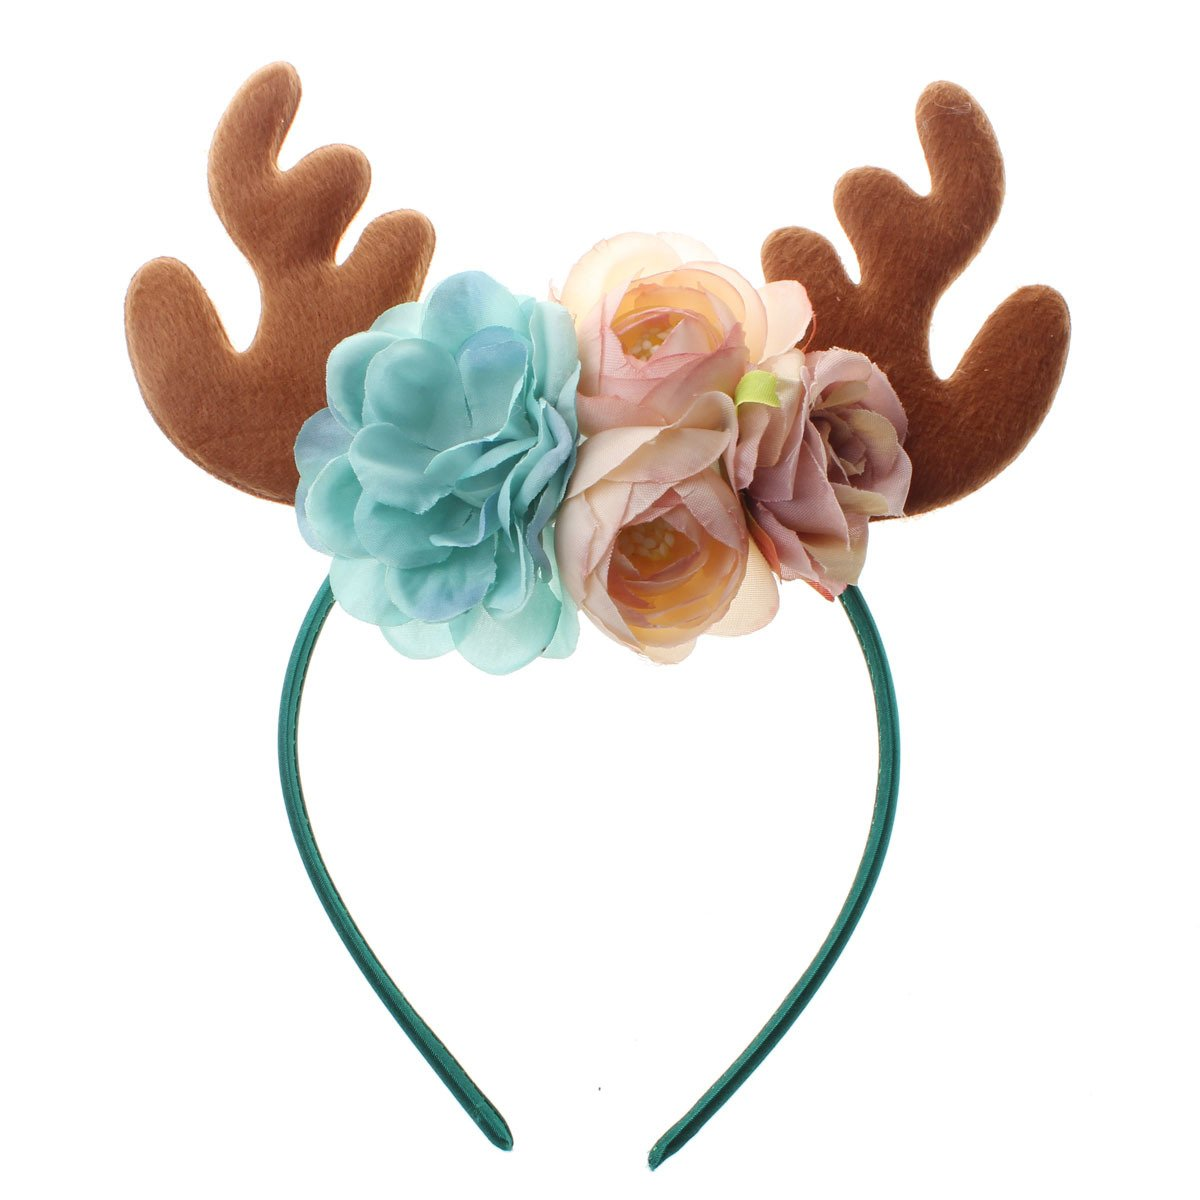 Ubbetter Girls Reindeer Antlers Ears Flower Headband Birthday Party Headbands